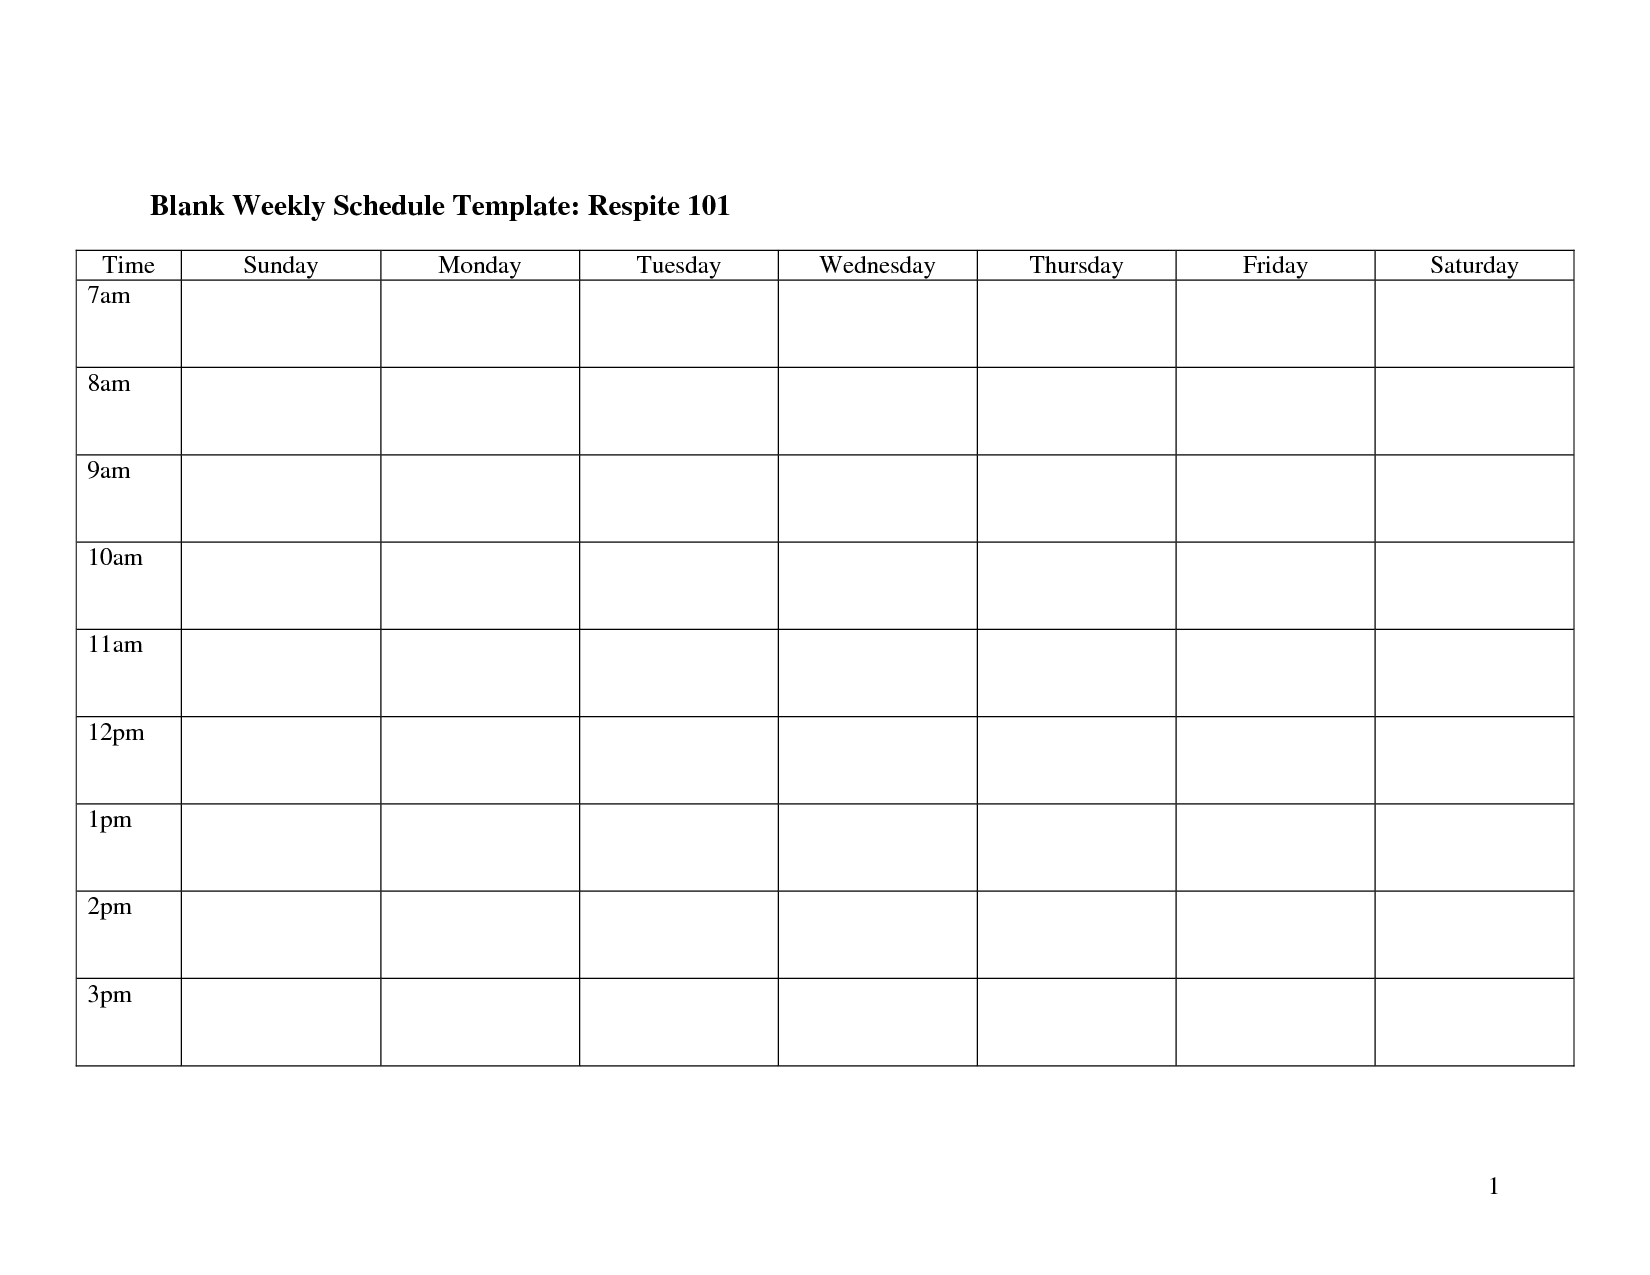 Weekly Schedule Monday Through Friday | Template Calendar Printable intended for Calendar Monday Through Friday Schedule